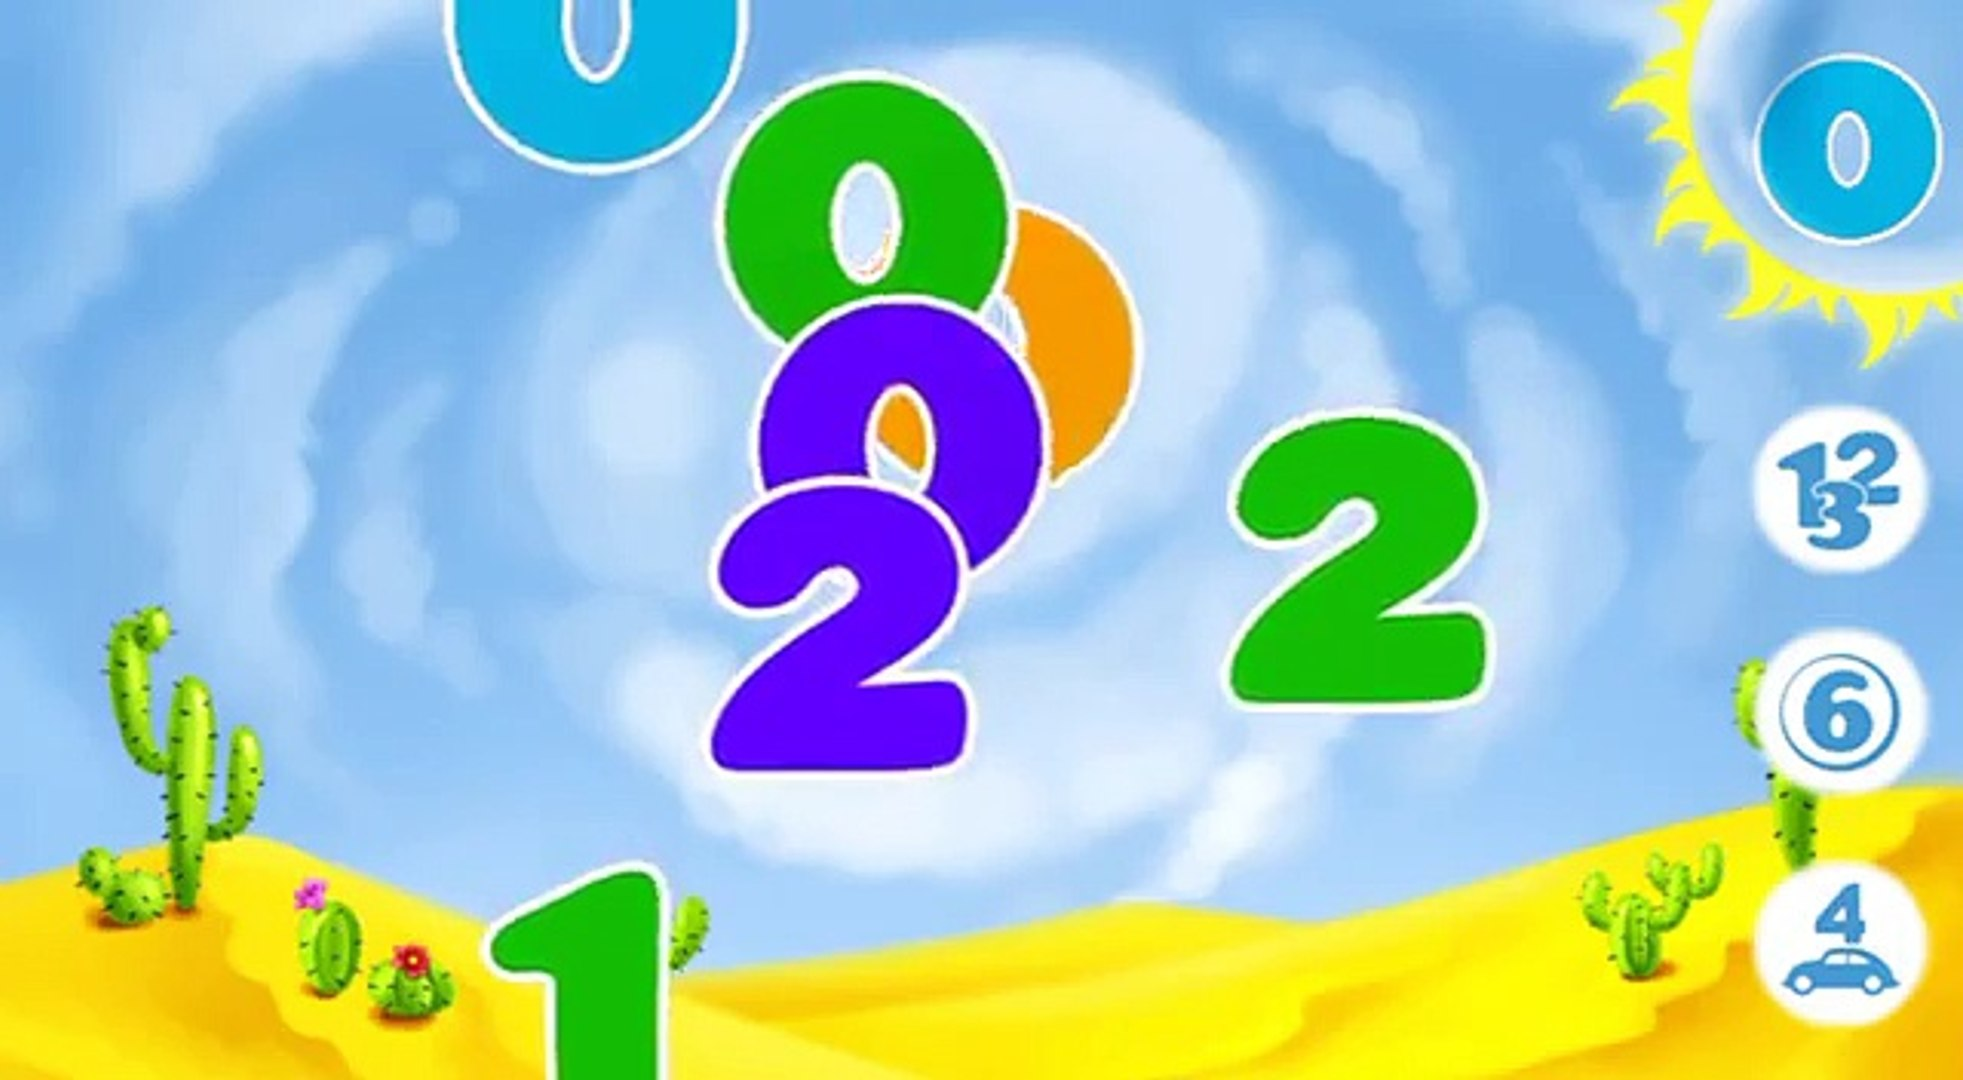 Kids games learning numbers GoKids! Gameplay app android apk apps educations